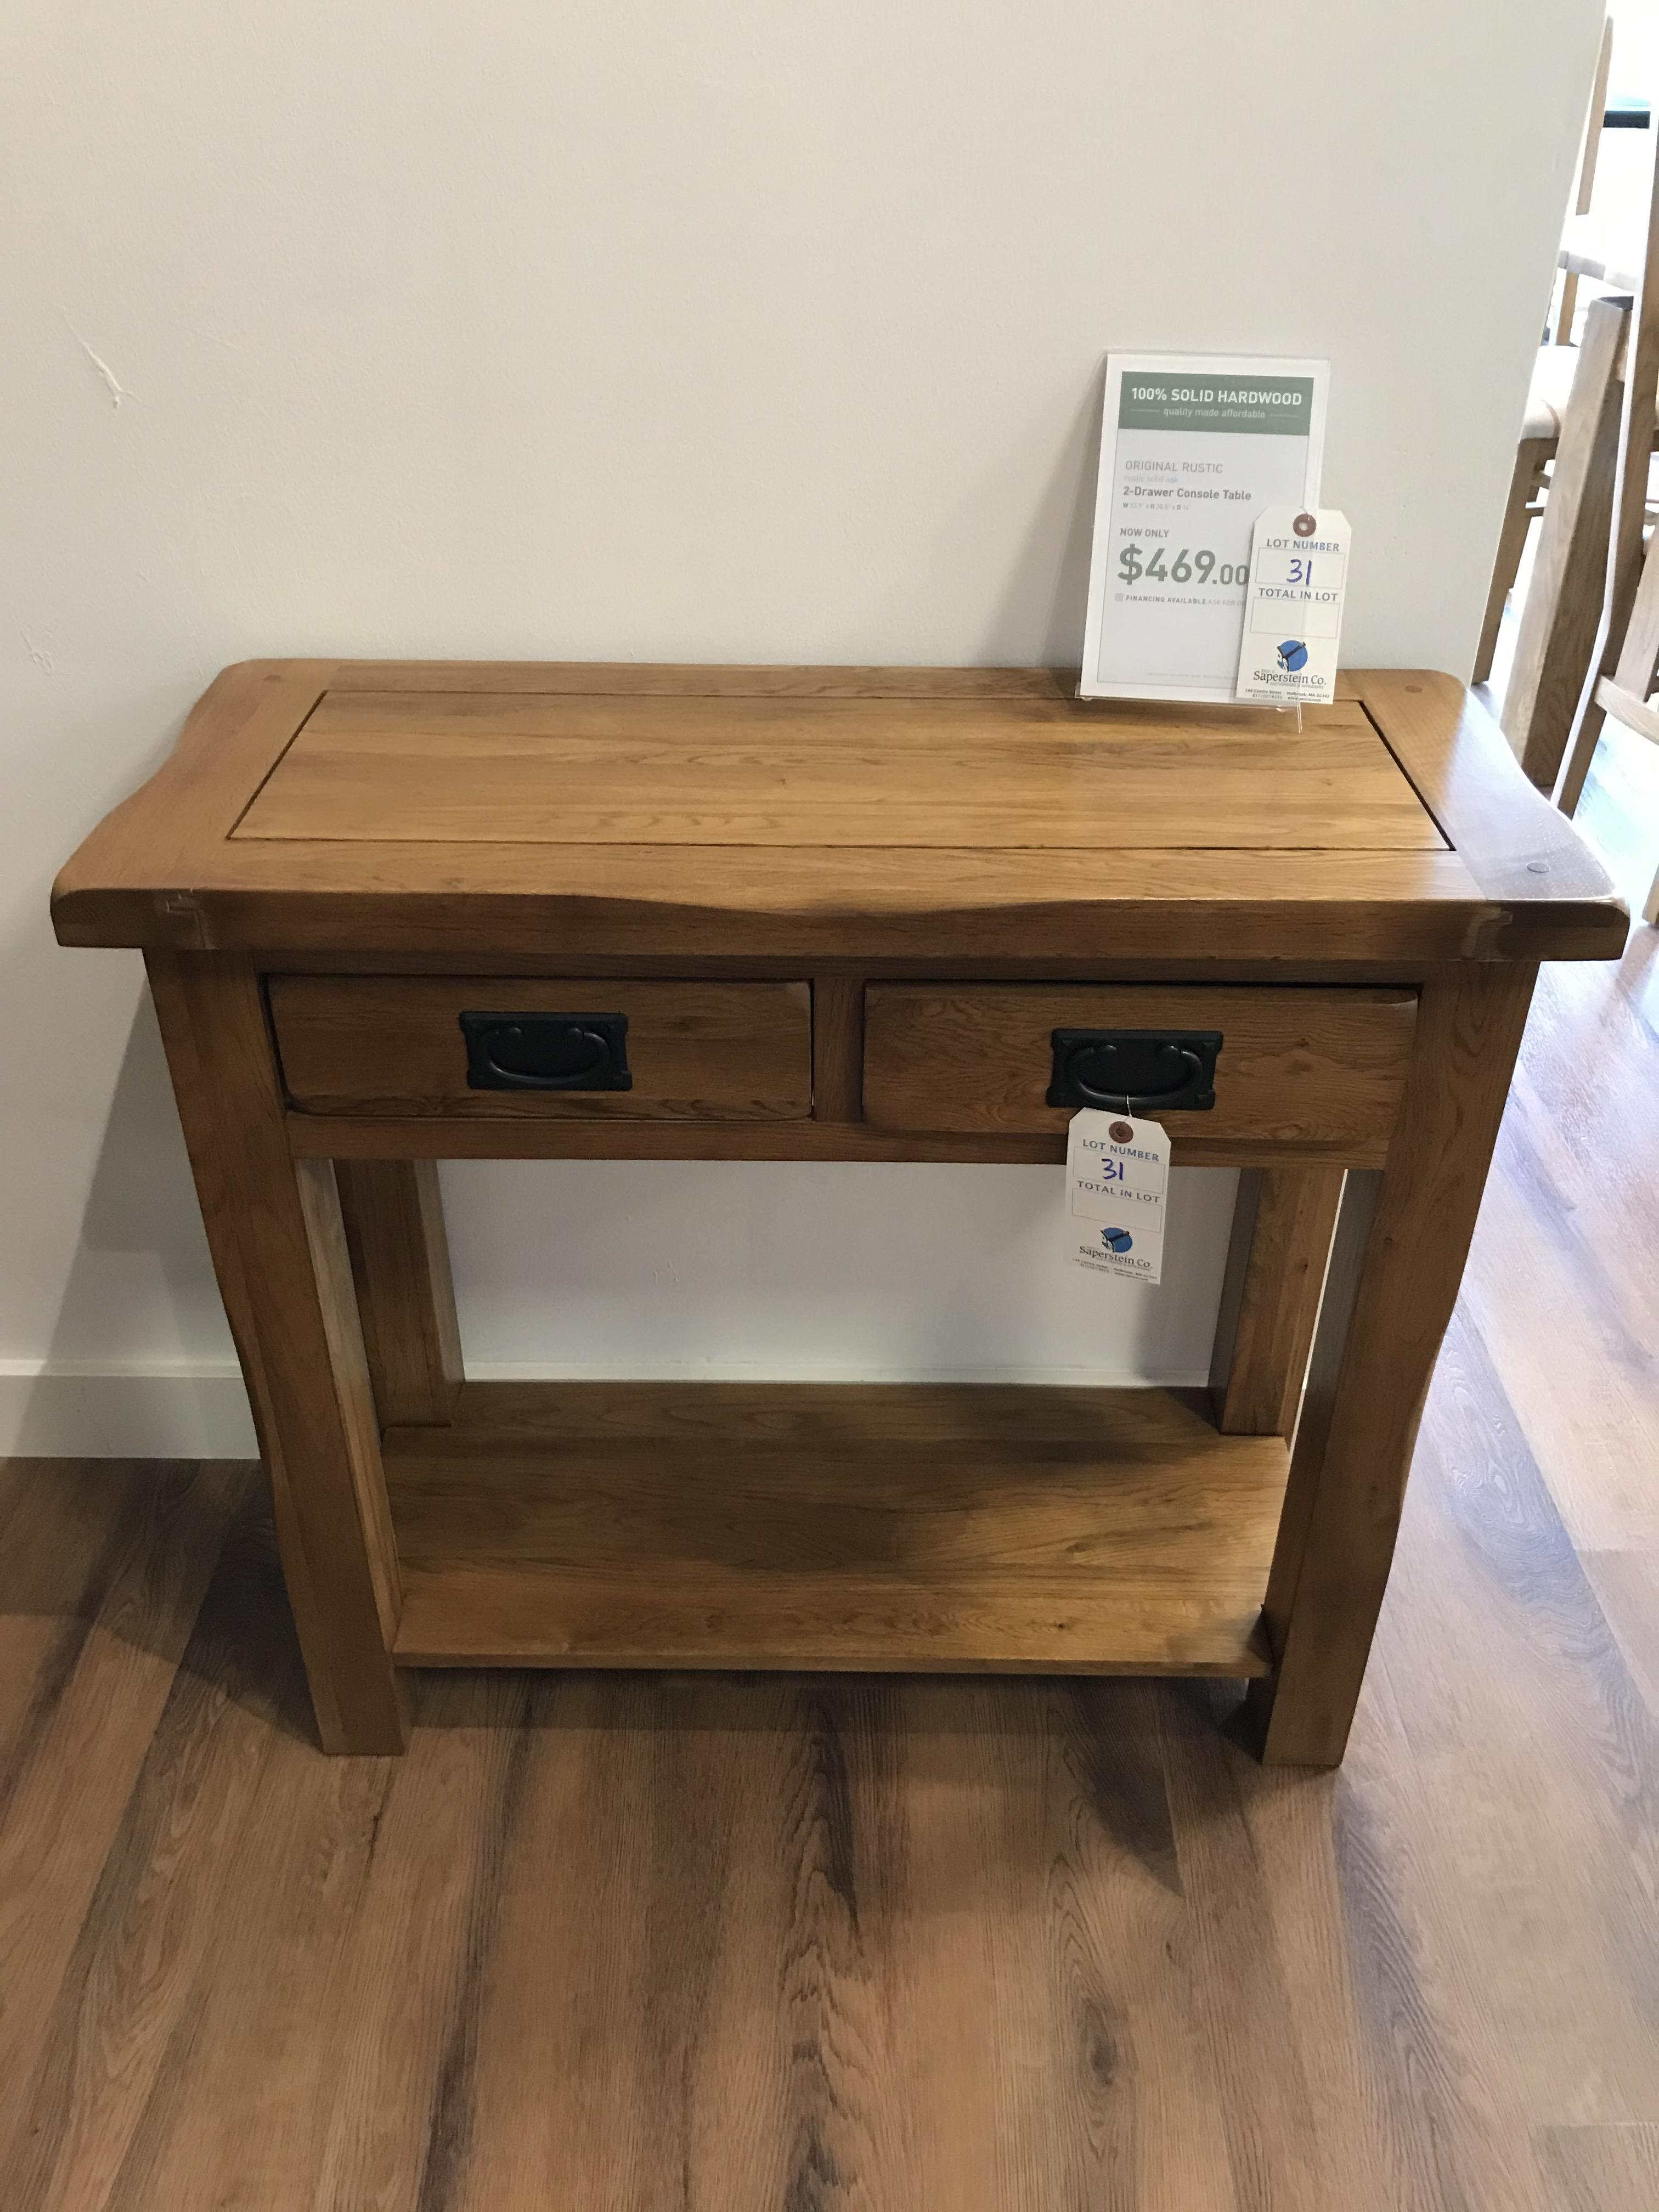 2 Drawer Console Table (Original Rustic) See Picture For Dimensions and Product Info